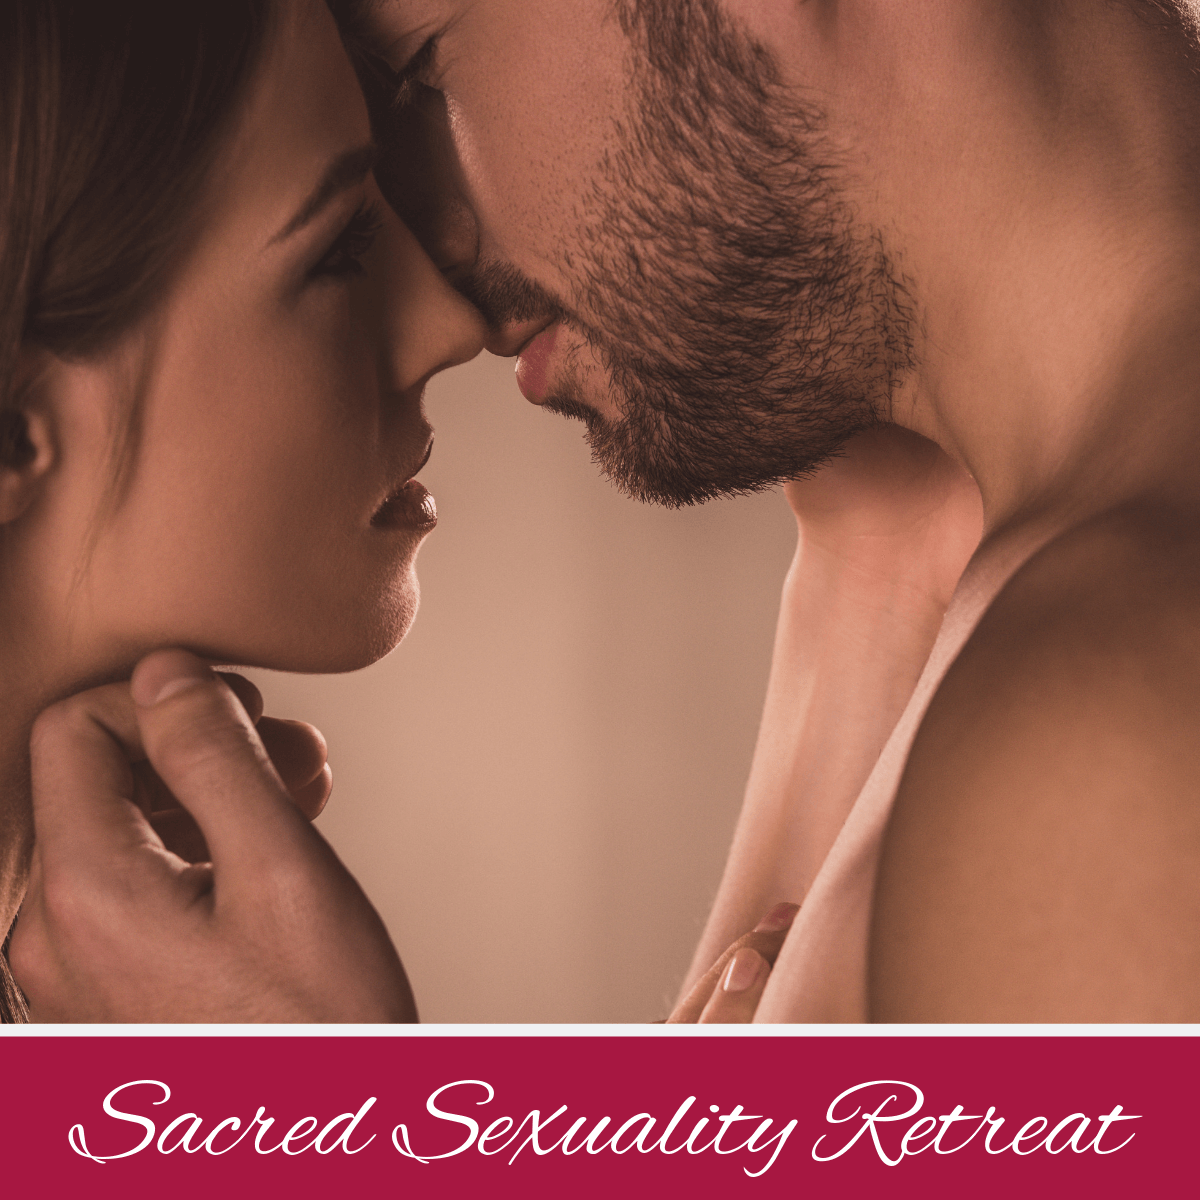 Sacred Sexuality Retreat